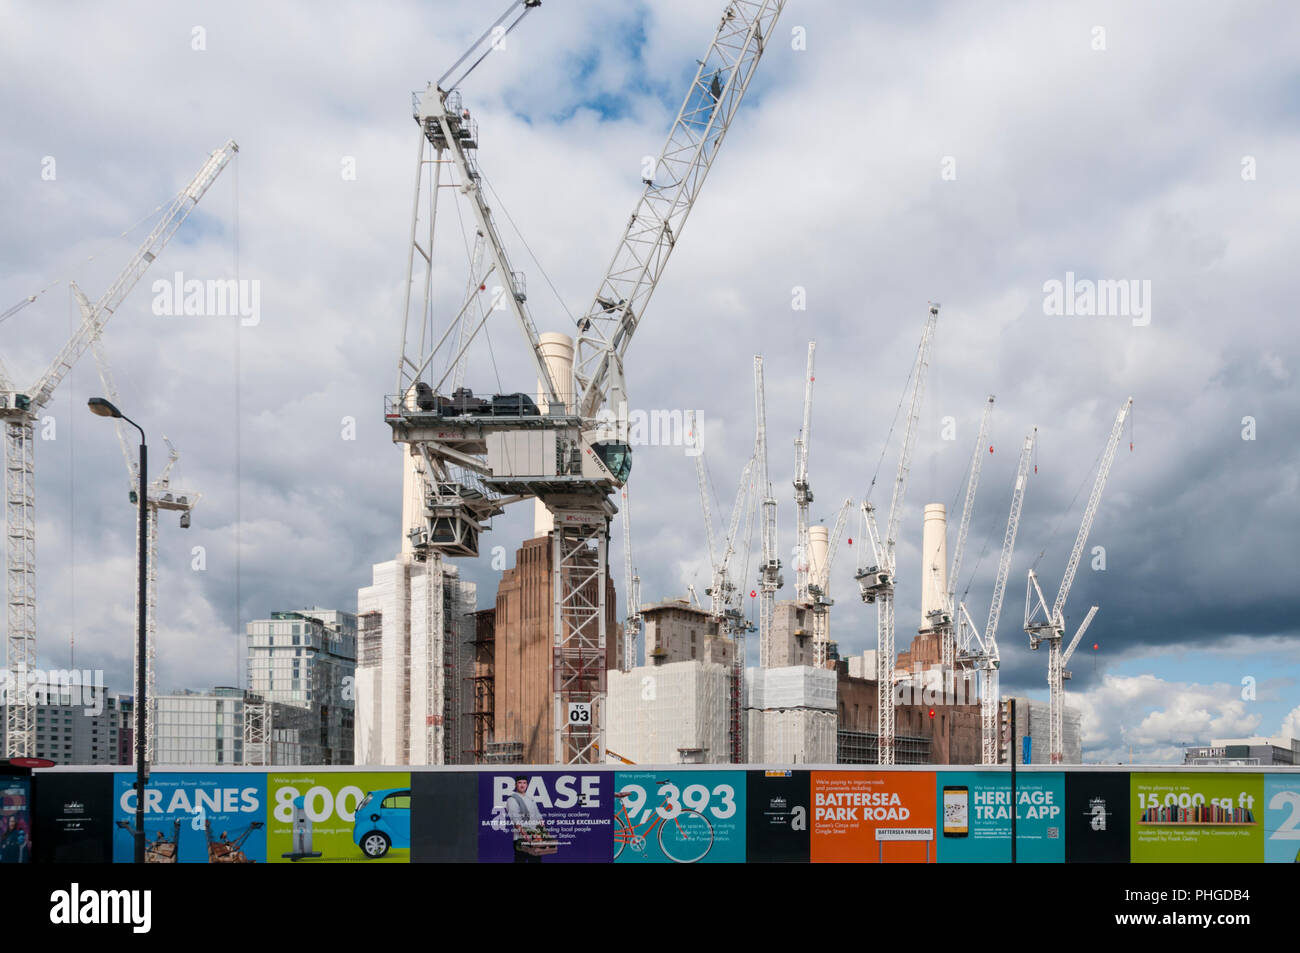 Tower cranes around the iconic chimneys of the closed Battersea Power Station, now a major re-development site. - Stock Image